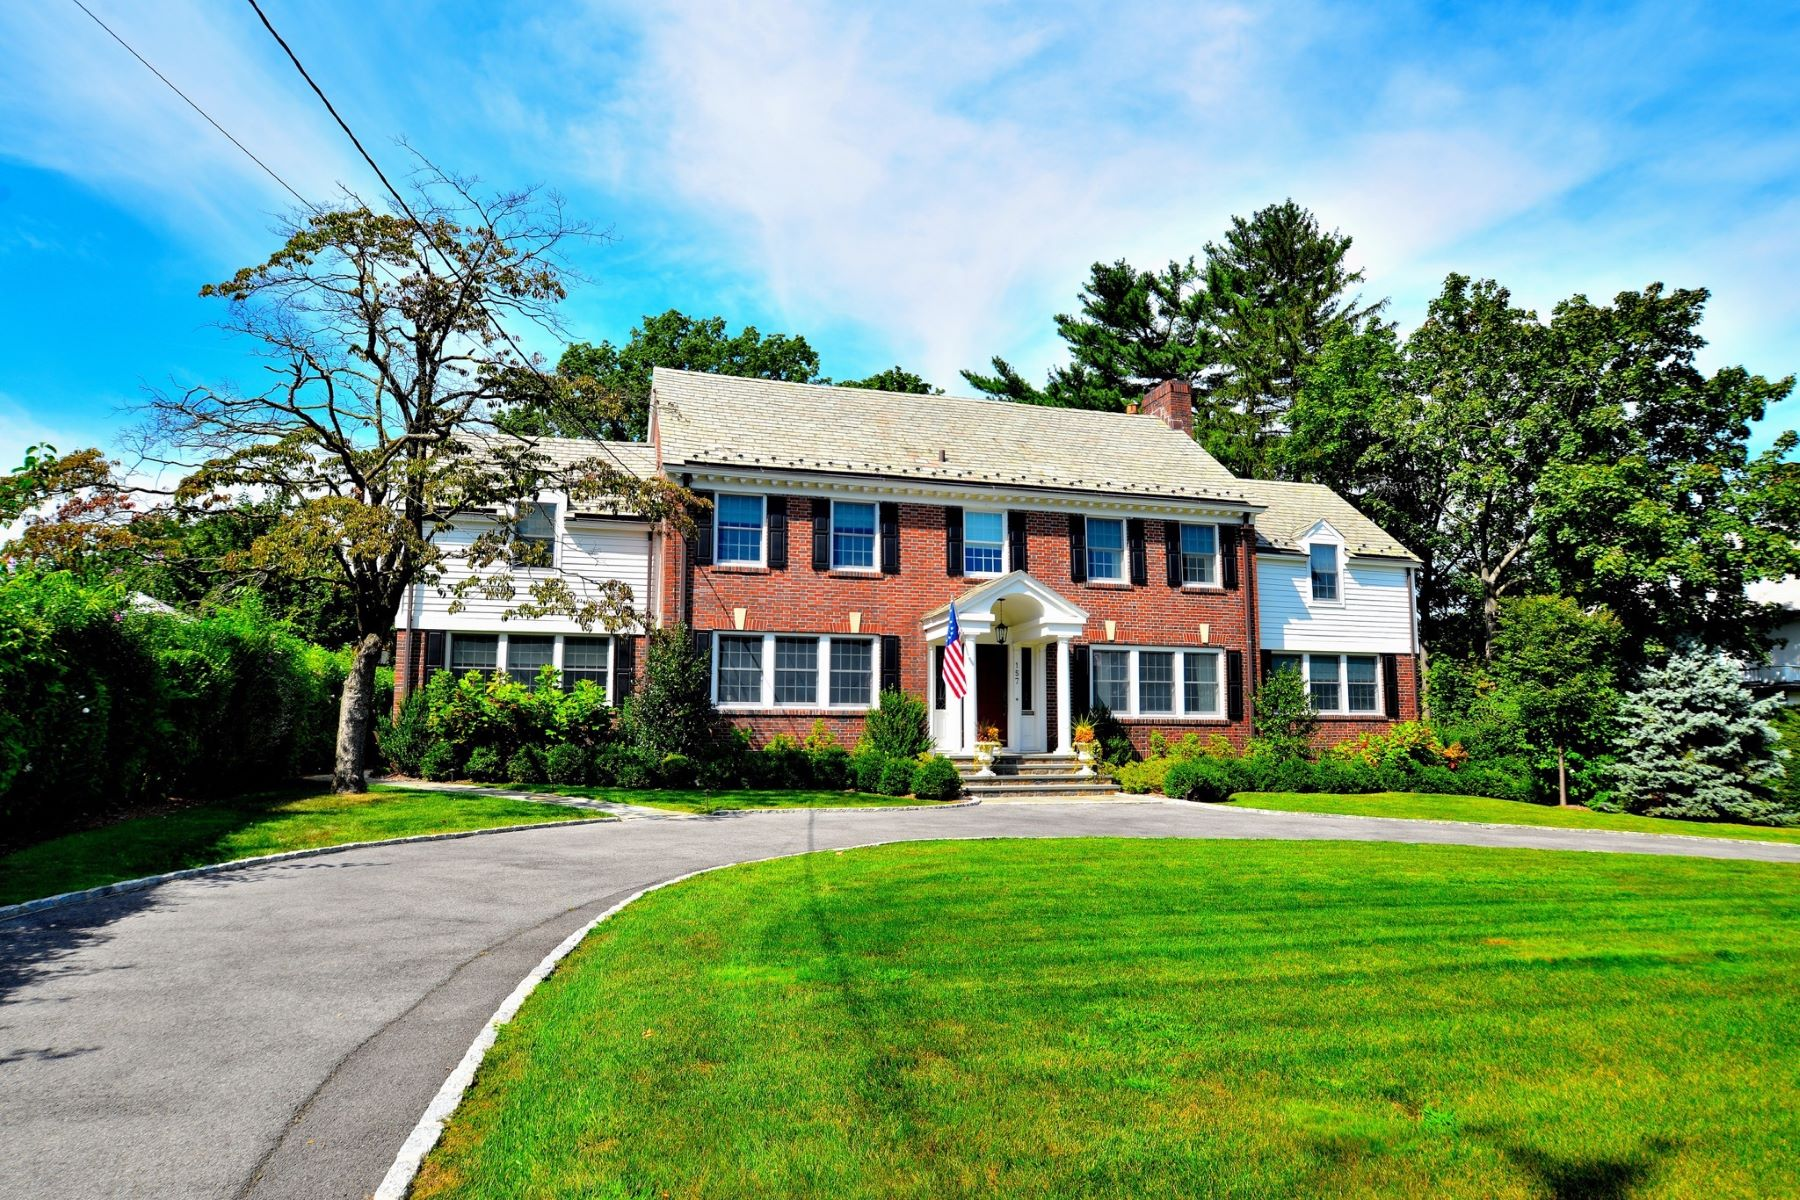 Single Family Home for Sale at Solid Brick Colonial 157 Jackson Avenue Pelham, New York 10803 United States